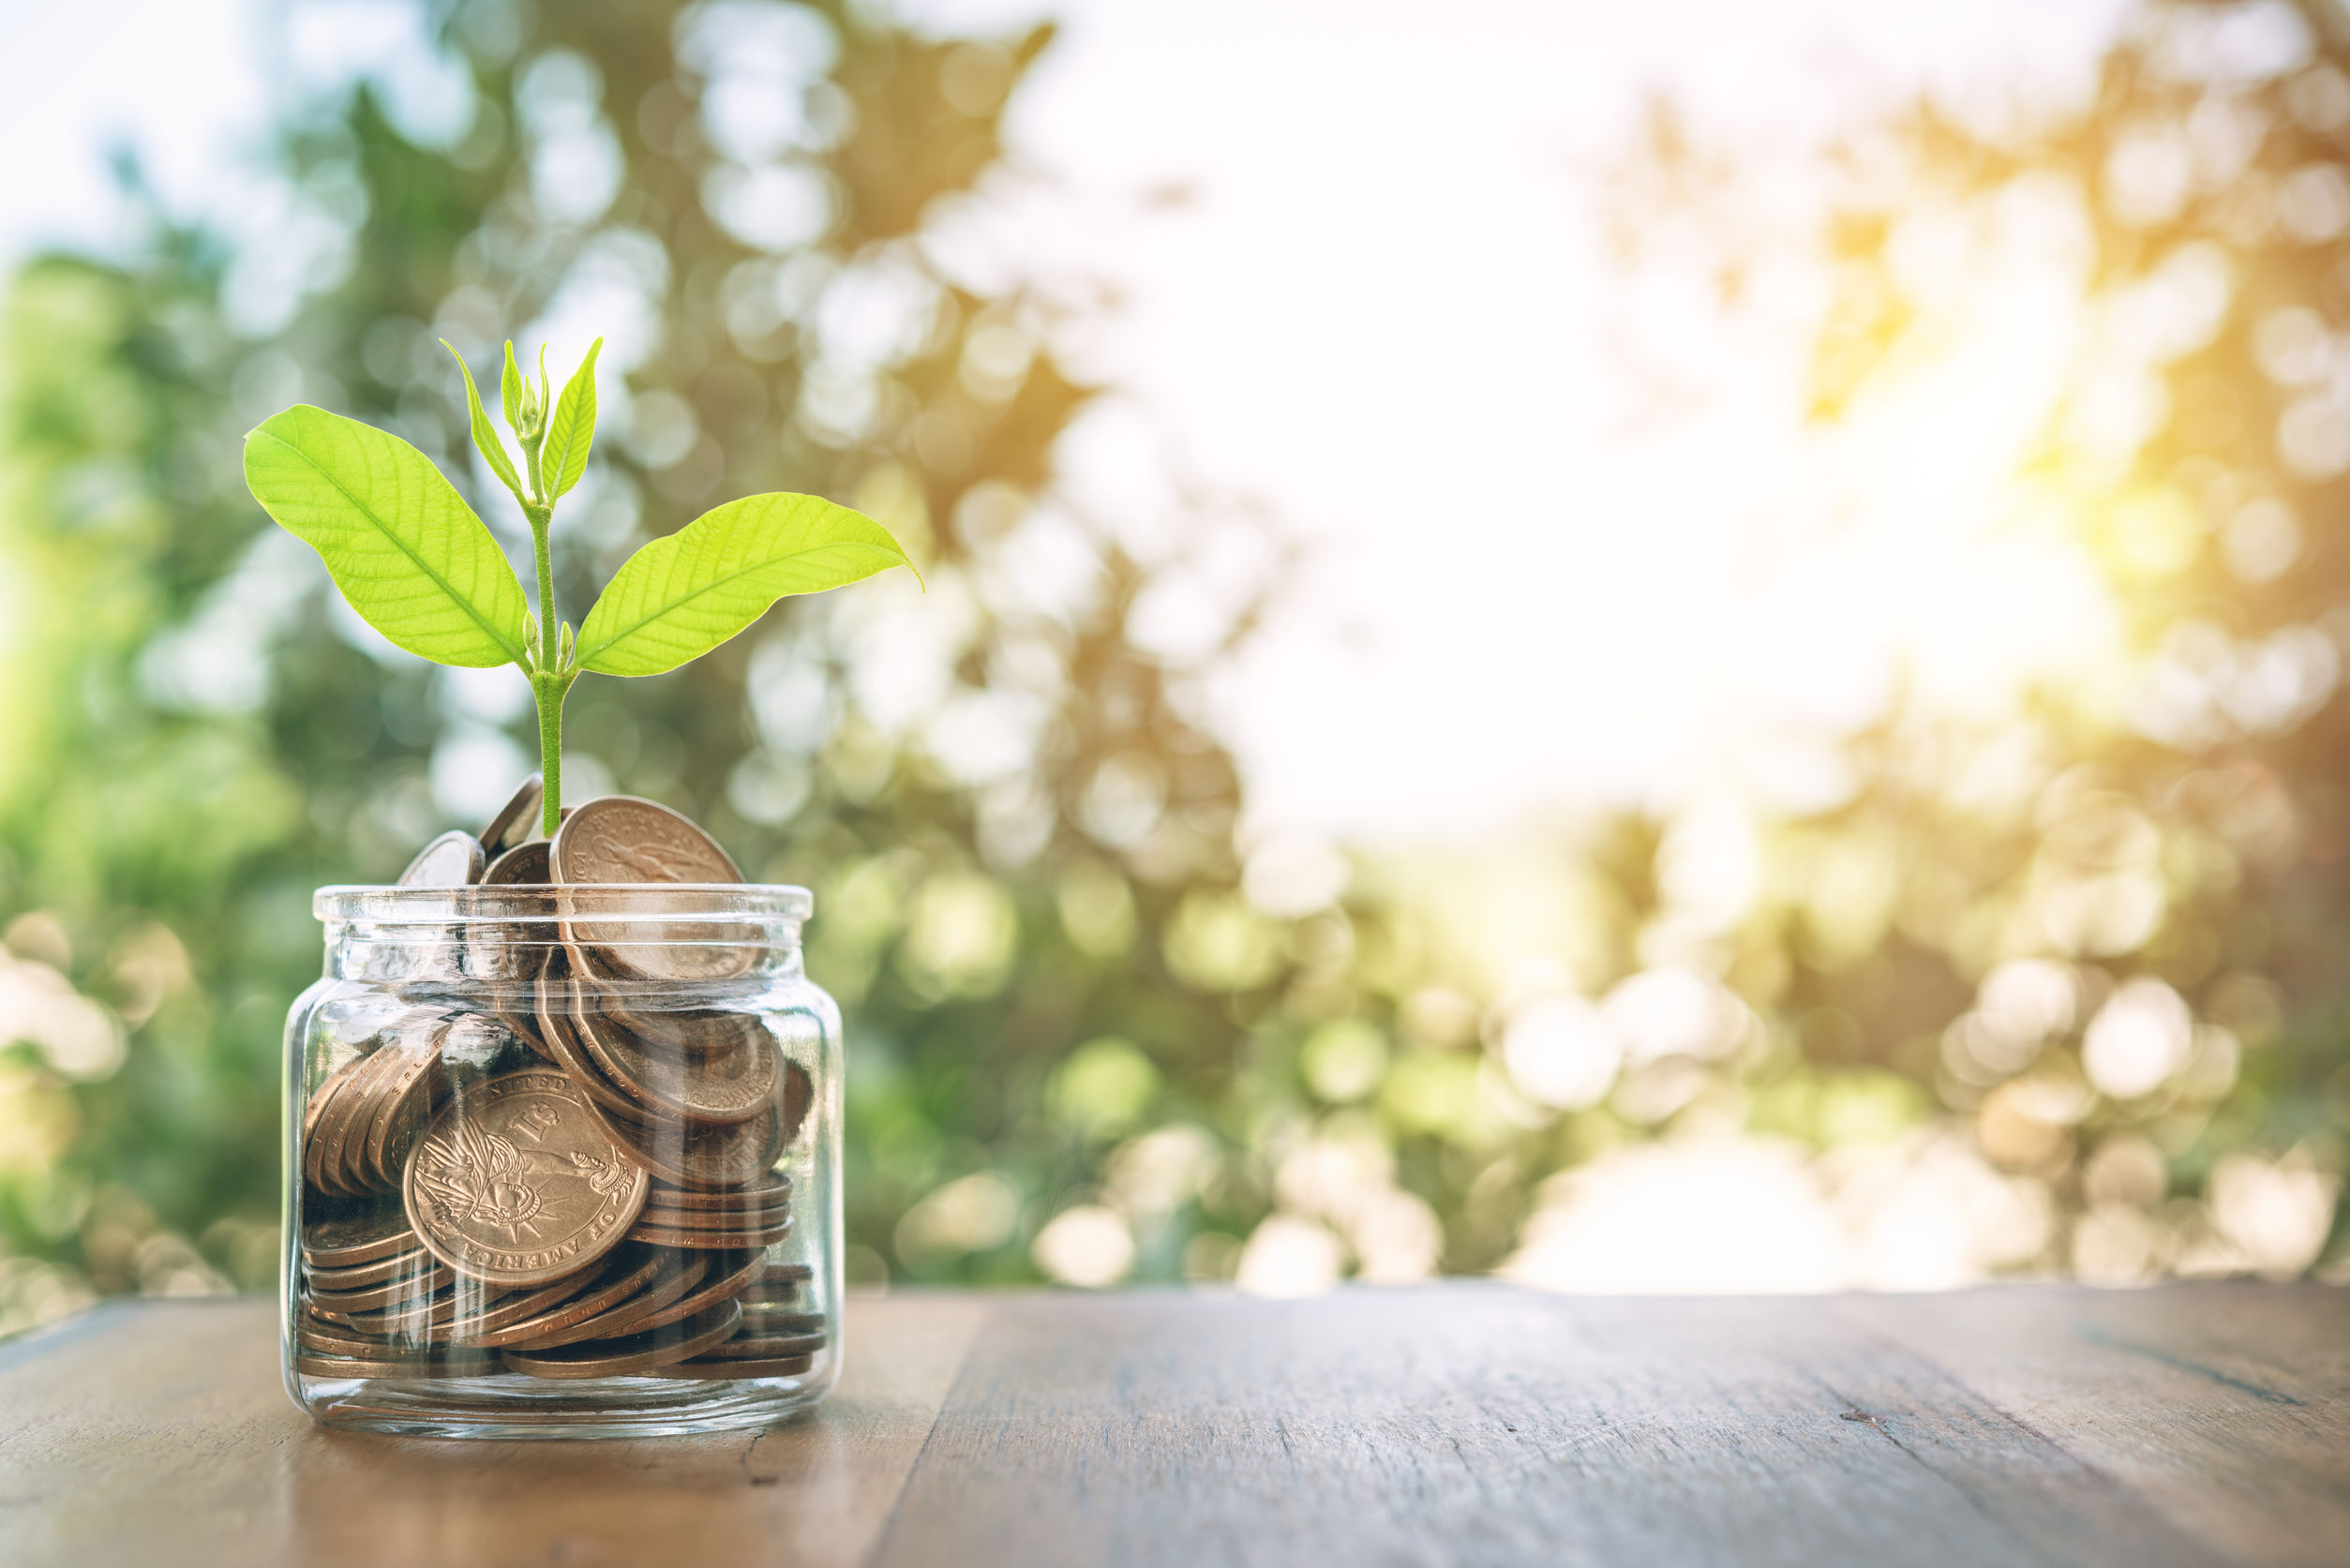 money and a plant in a jar, representing economic growth